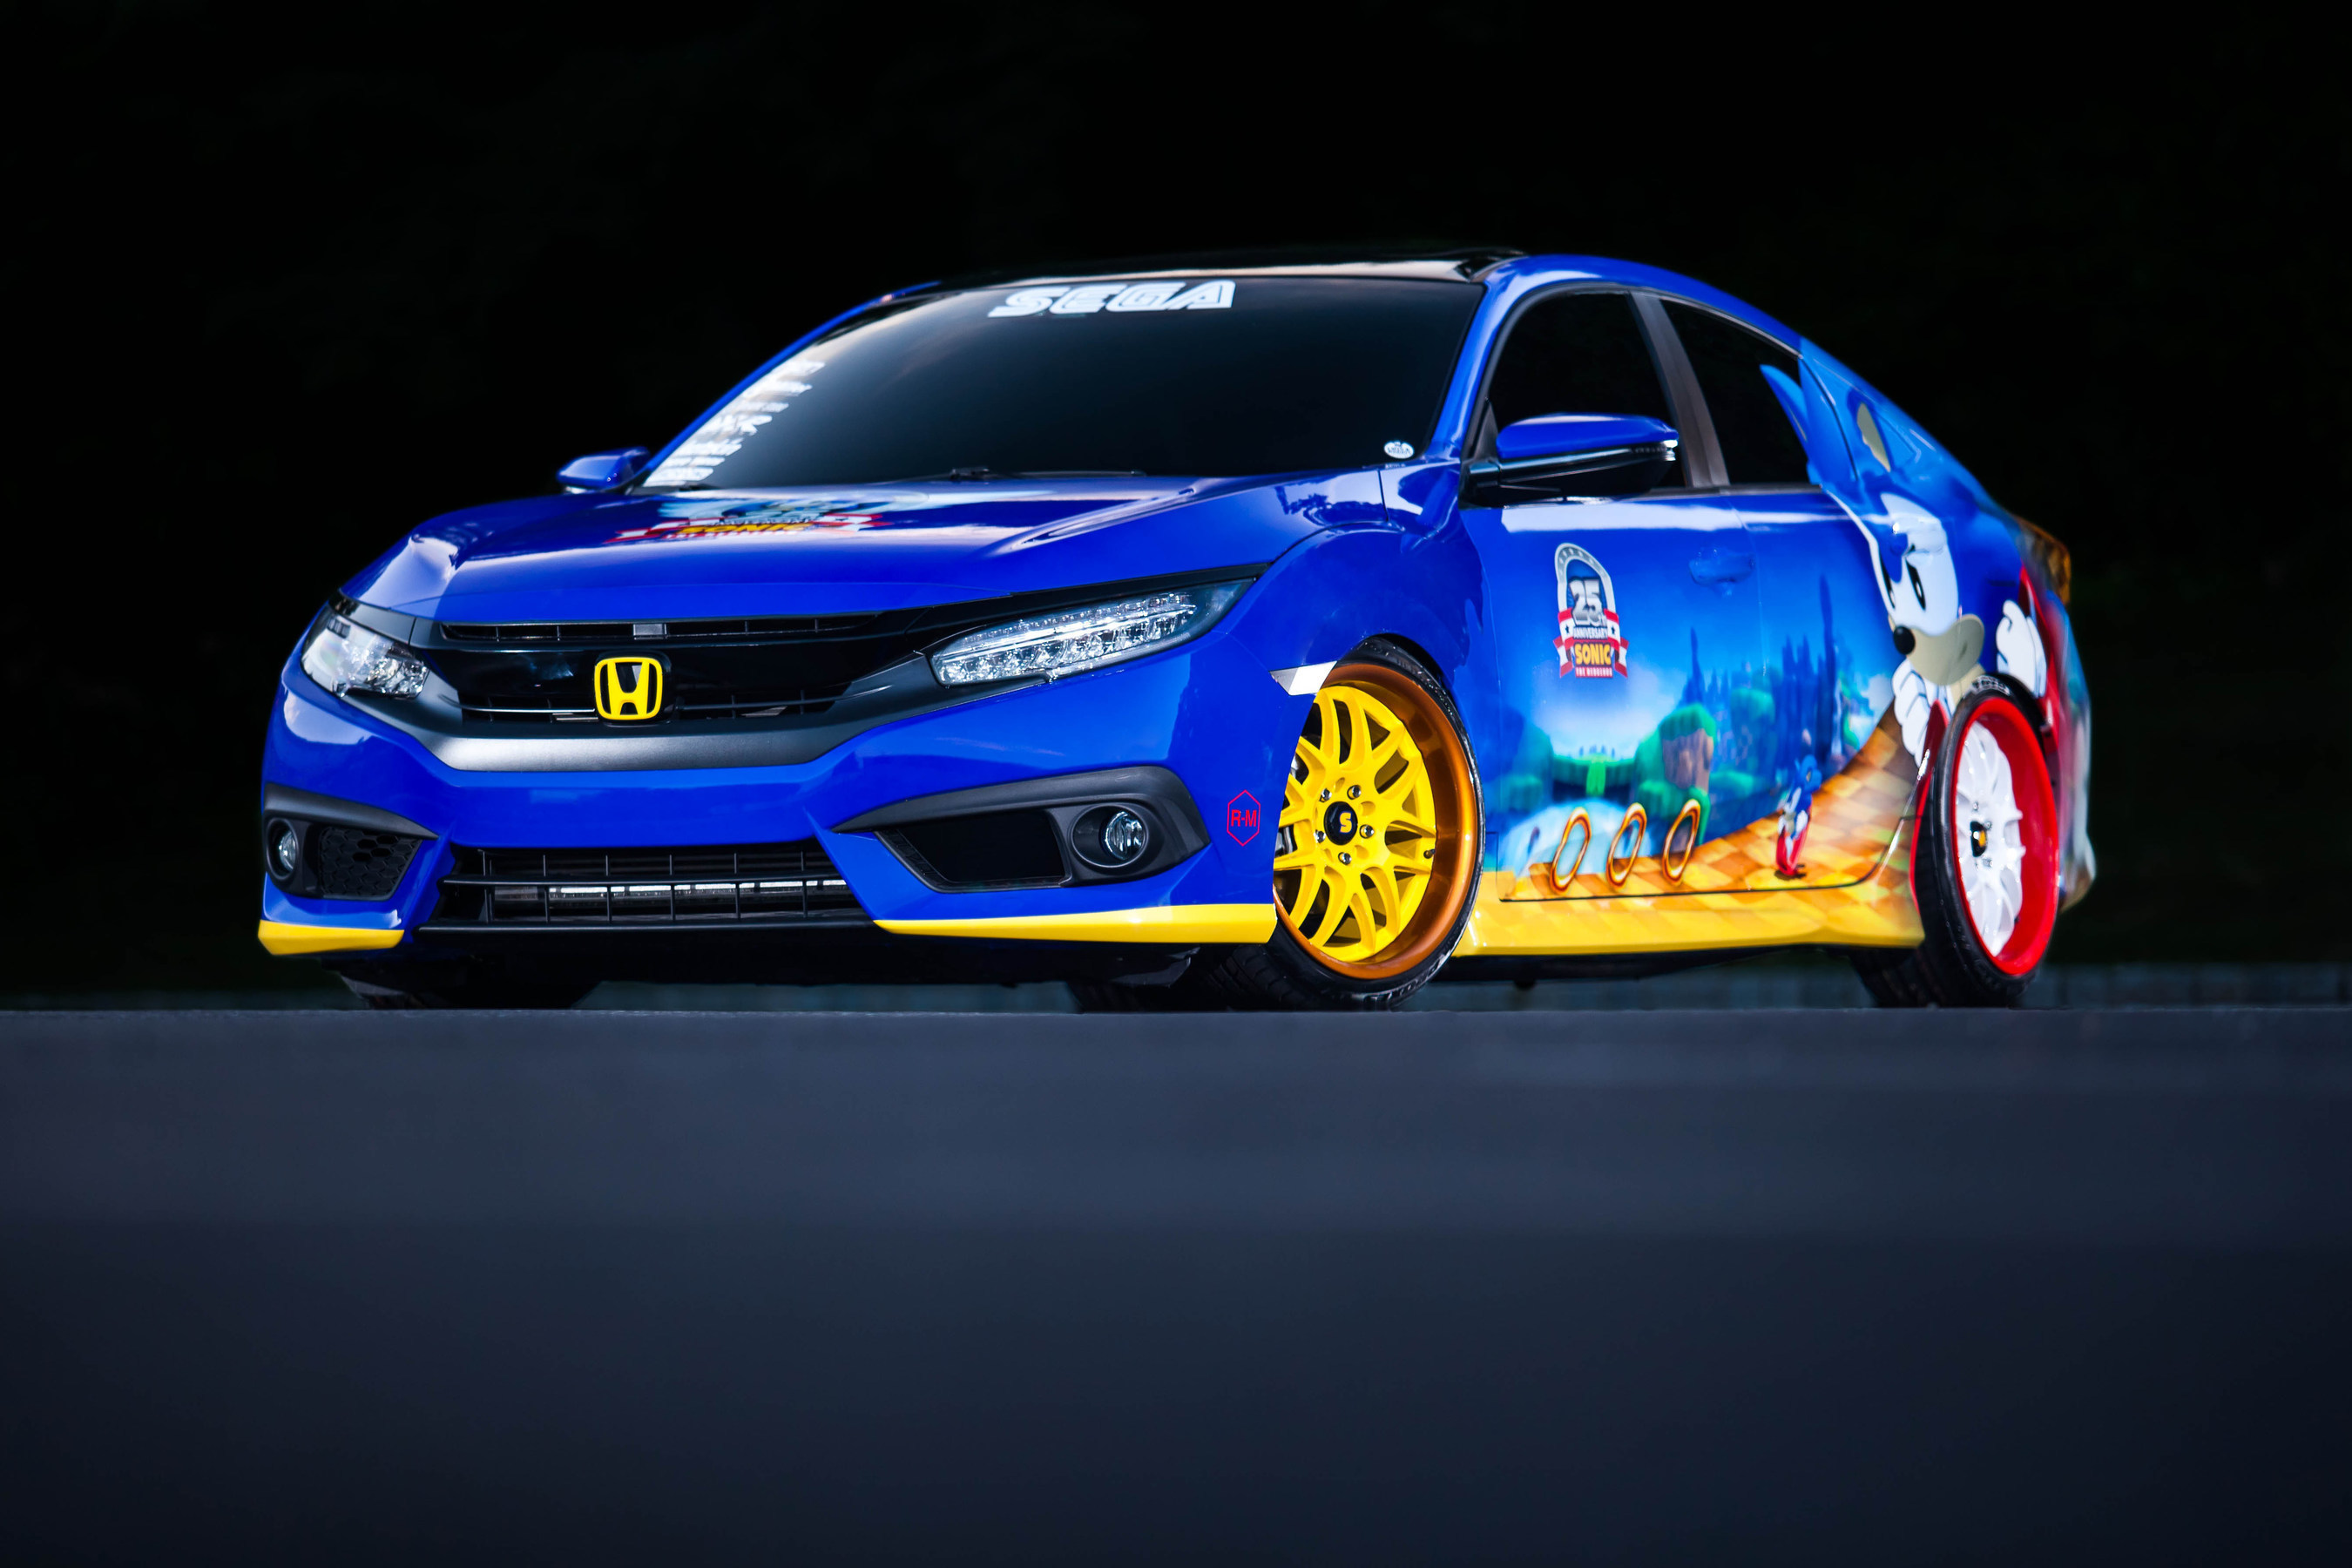 """Honda Debuts Custom-Designed """"Sonic Civic"""" at Comic-Con; Joins """"Sonic the Hedgehog(TM)"""" and SEGA(R) in Celebrating the Iconic Game's 25th Anniversary"""